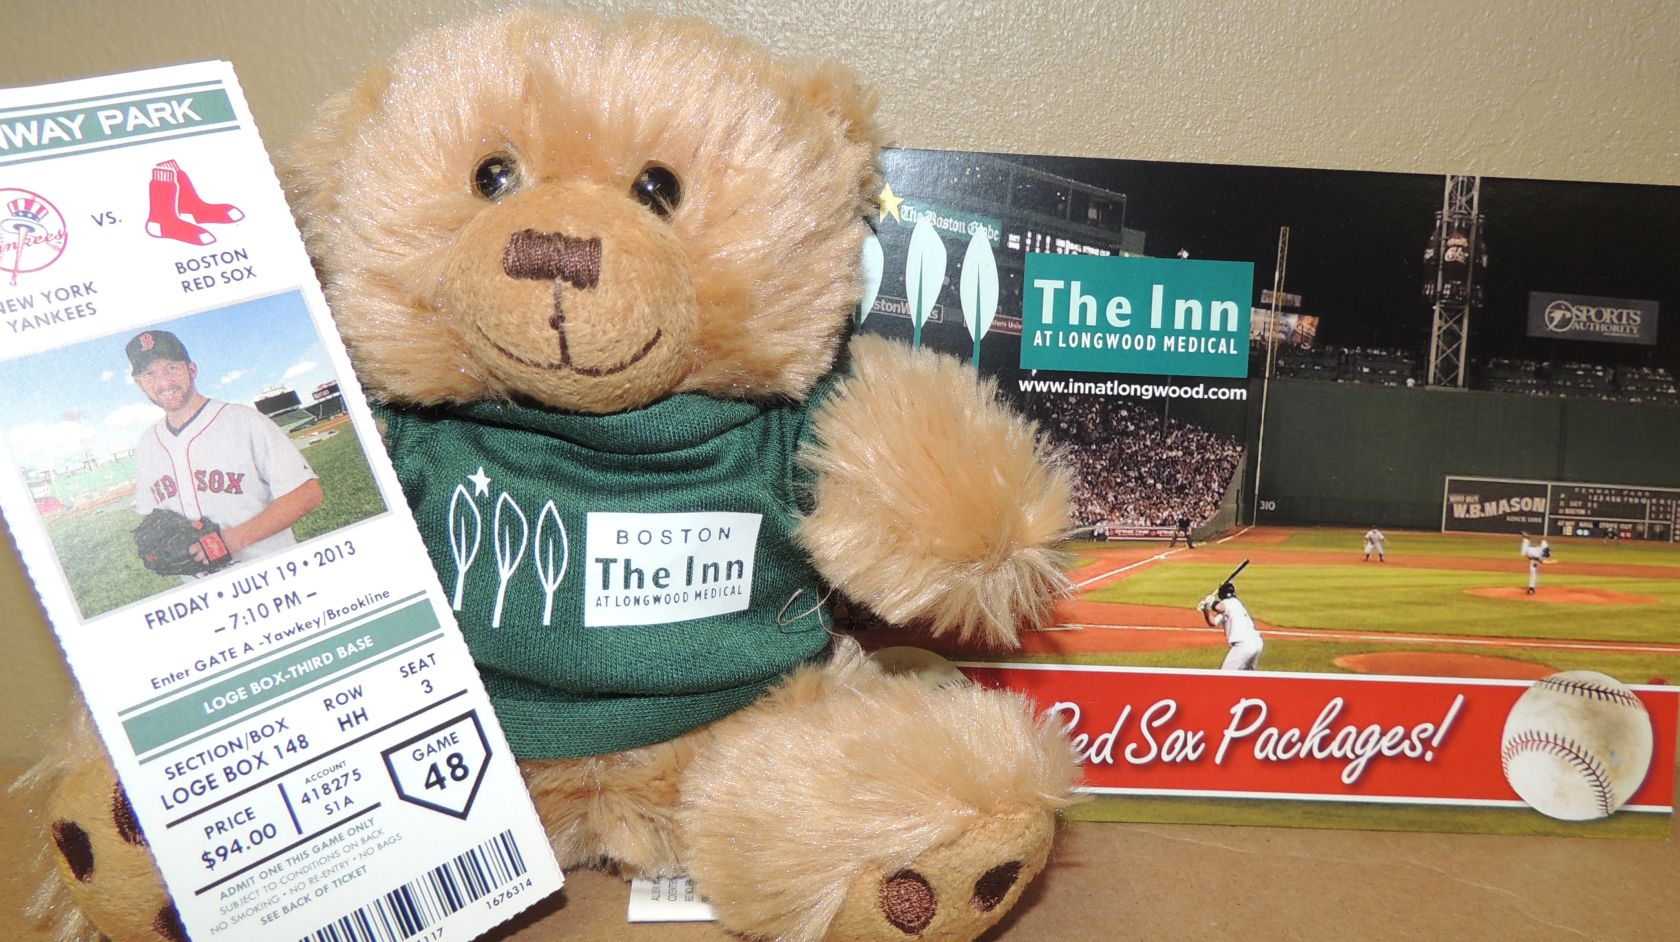 Hope the bear and baseball tickets promo for Inn at Longwood Medical in Boston